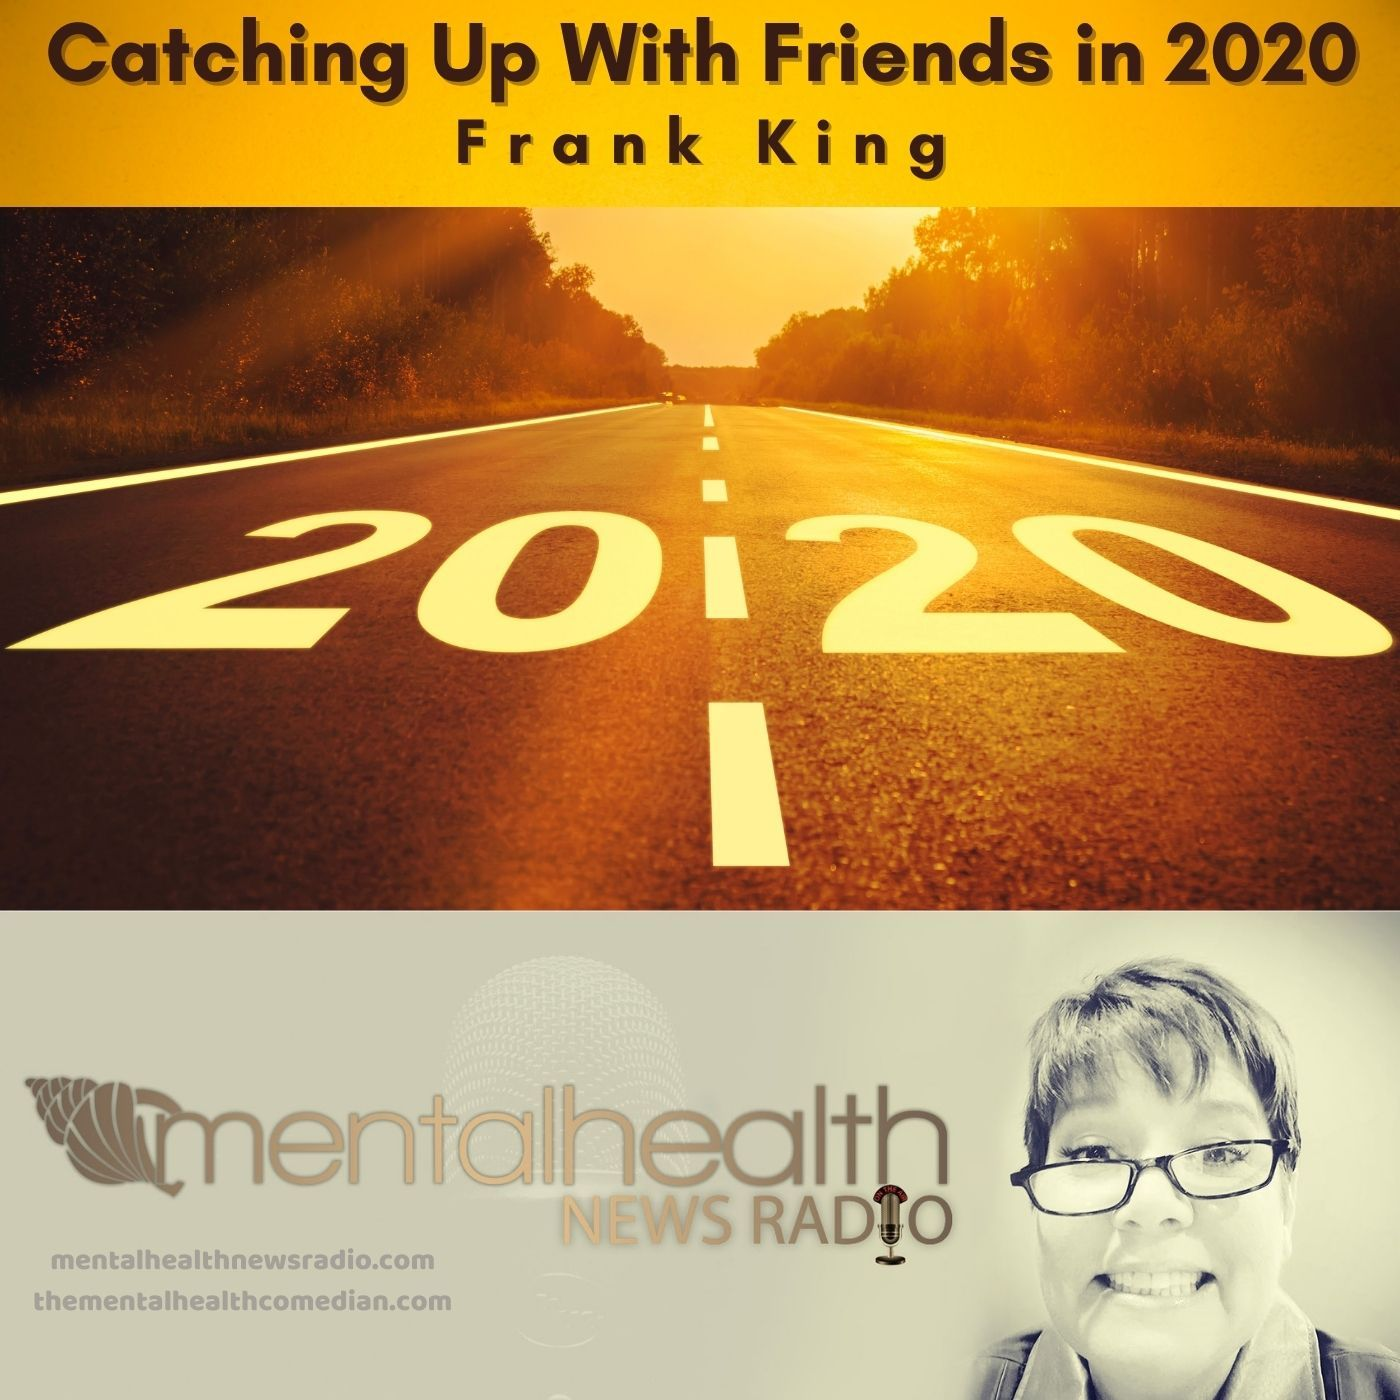 Mental Health News Radio - Catching Up With Friends in 2020